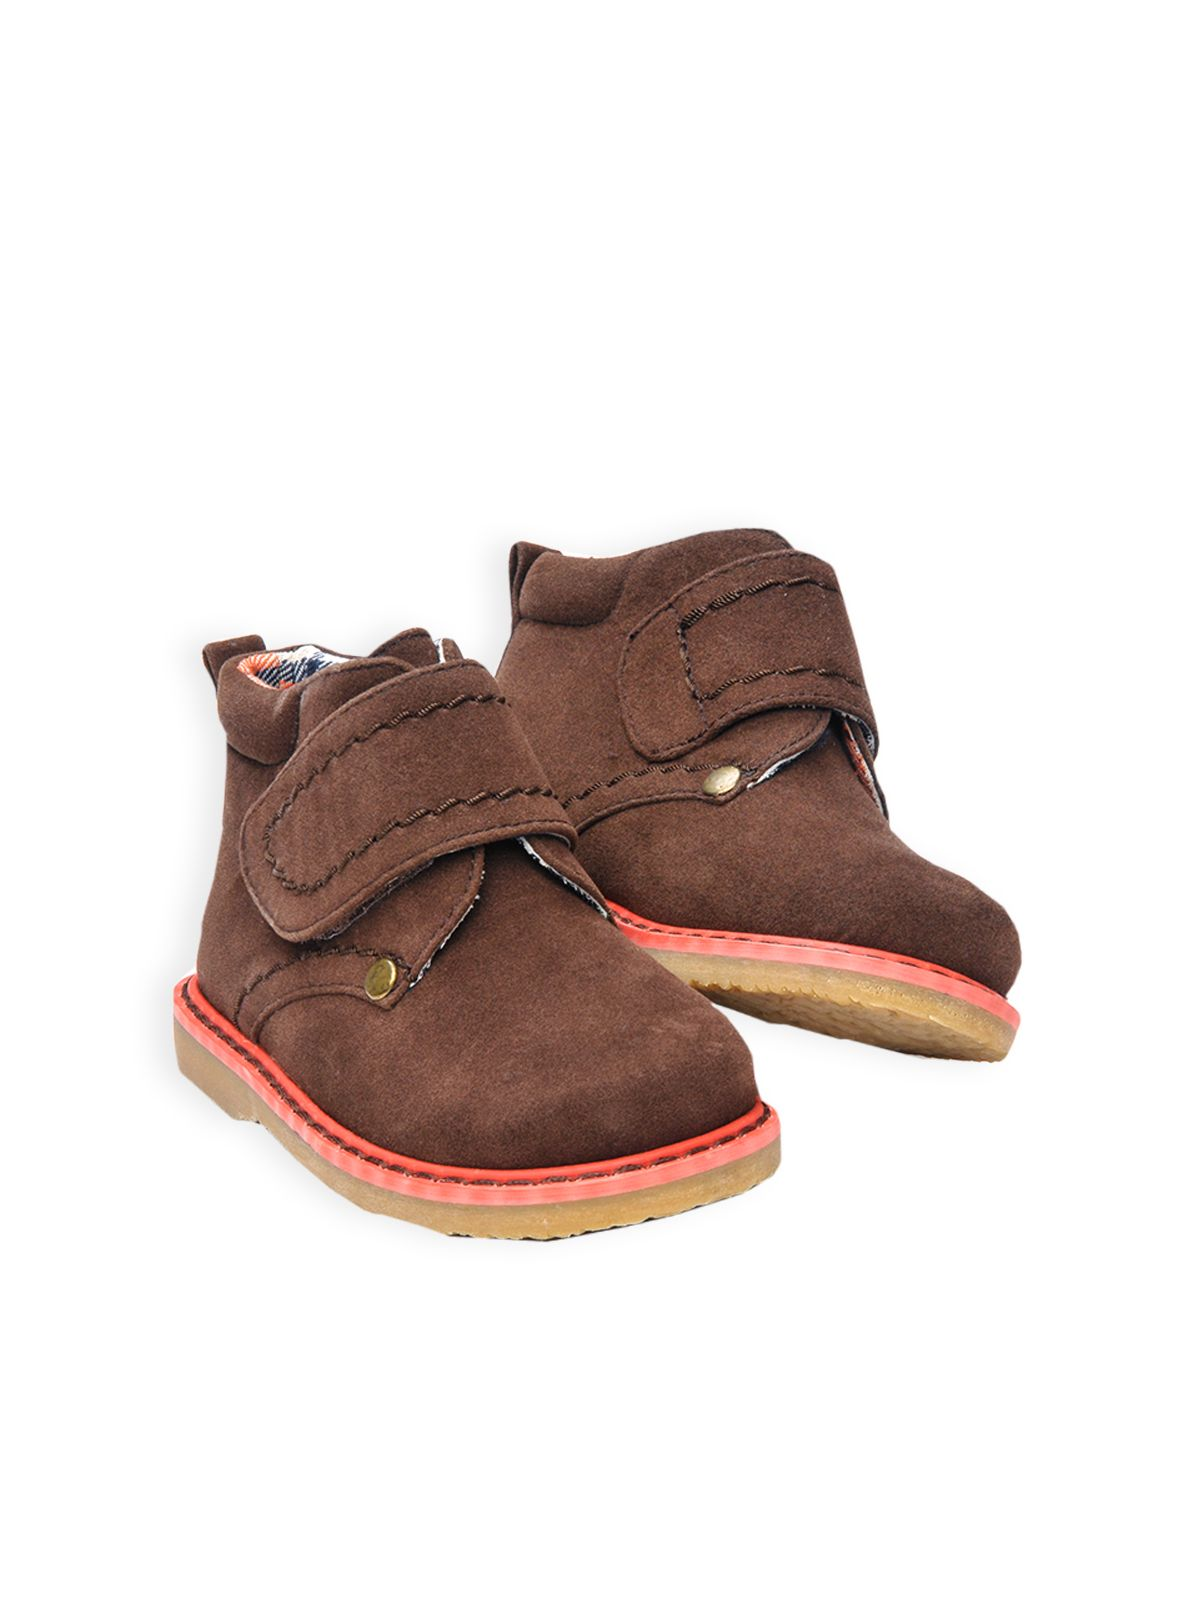 Boys aviator ankle boot